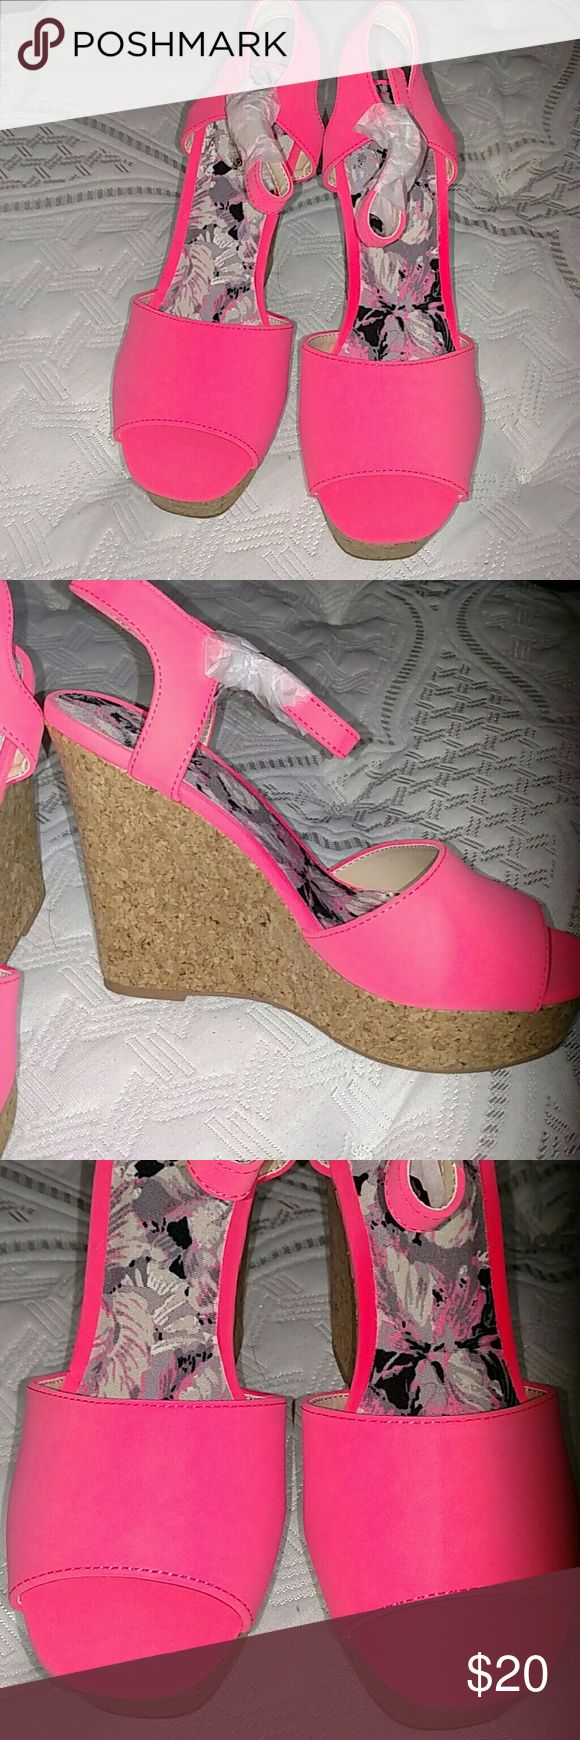 Hot pink wedge sandals Brand new in the box hot hot pink cork wedged sandals!! Perfect for spring/summer. Qupid Shoes Sandals